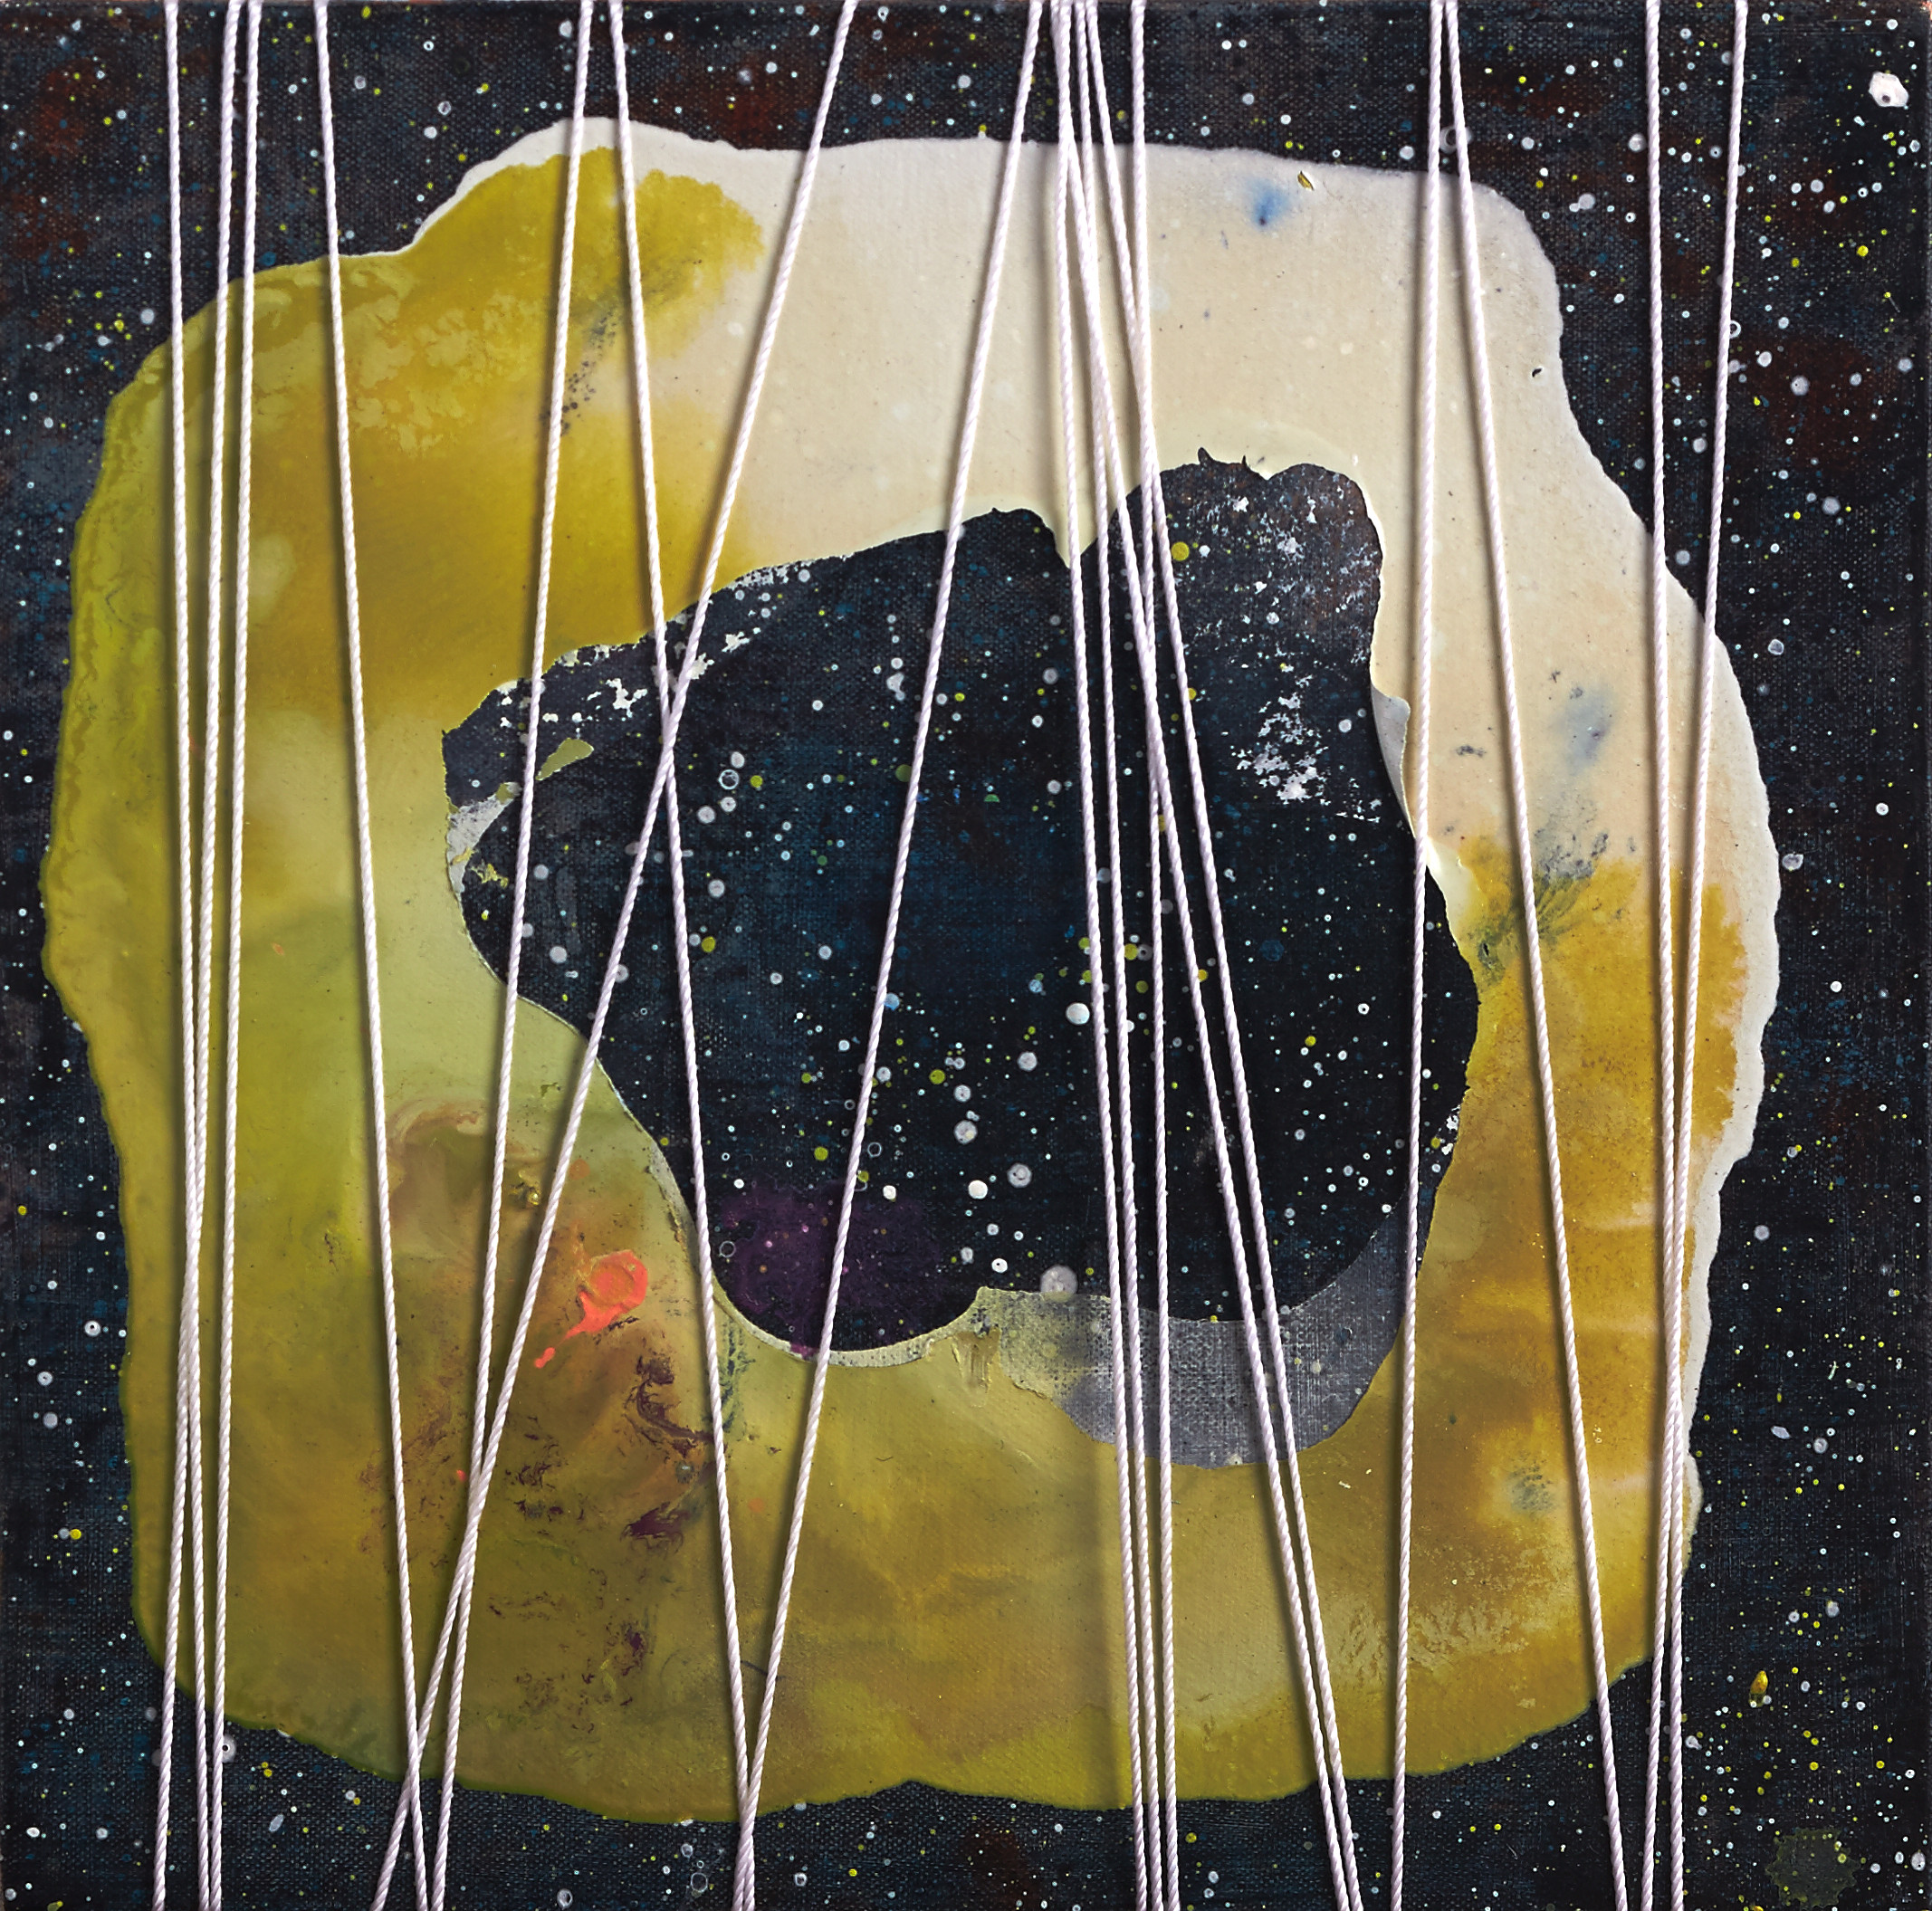 The Lasso of Time, 2014, acrylic, ink, polyurethane resin and string on canvas, 30 x 30cm